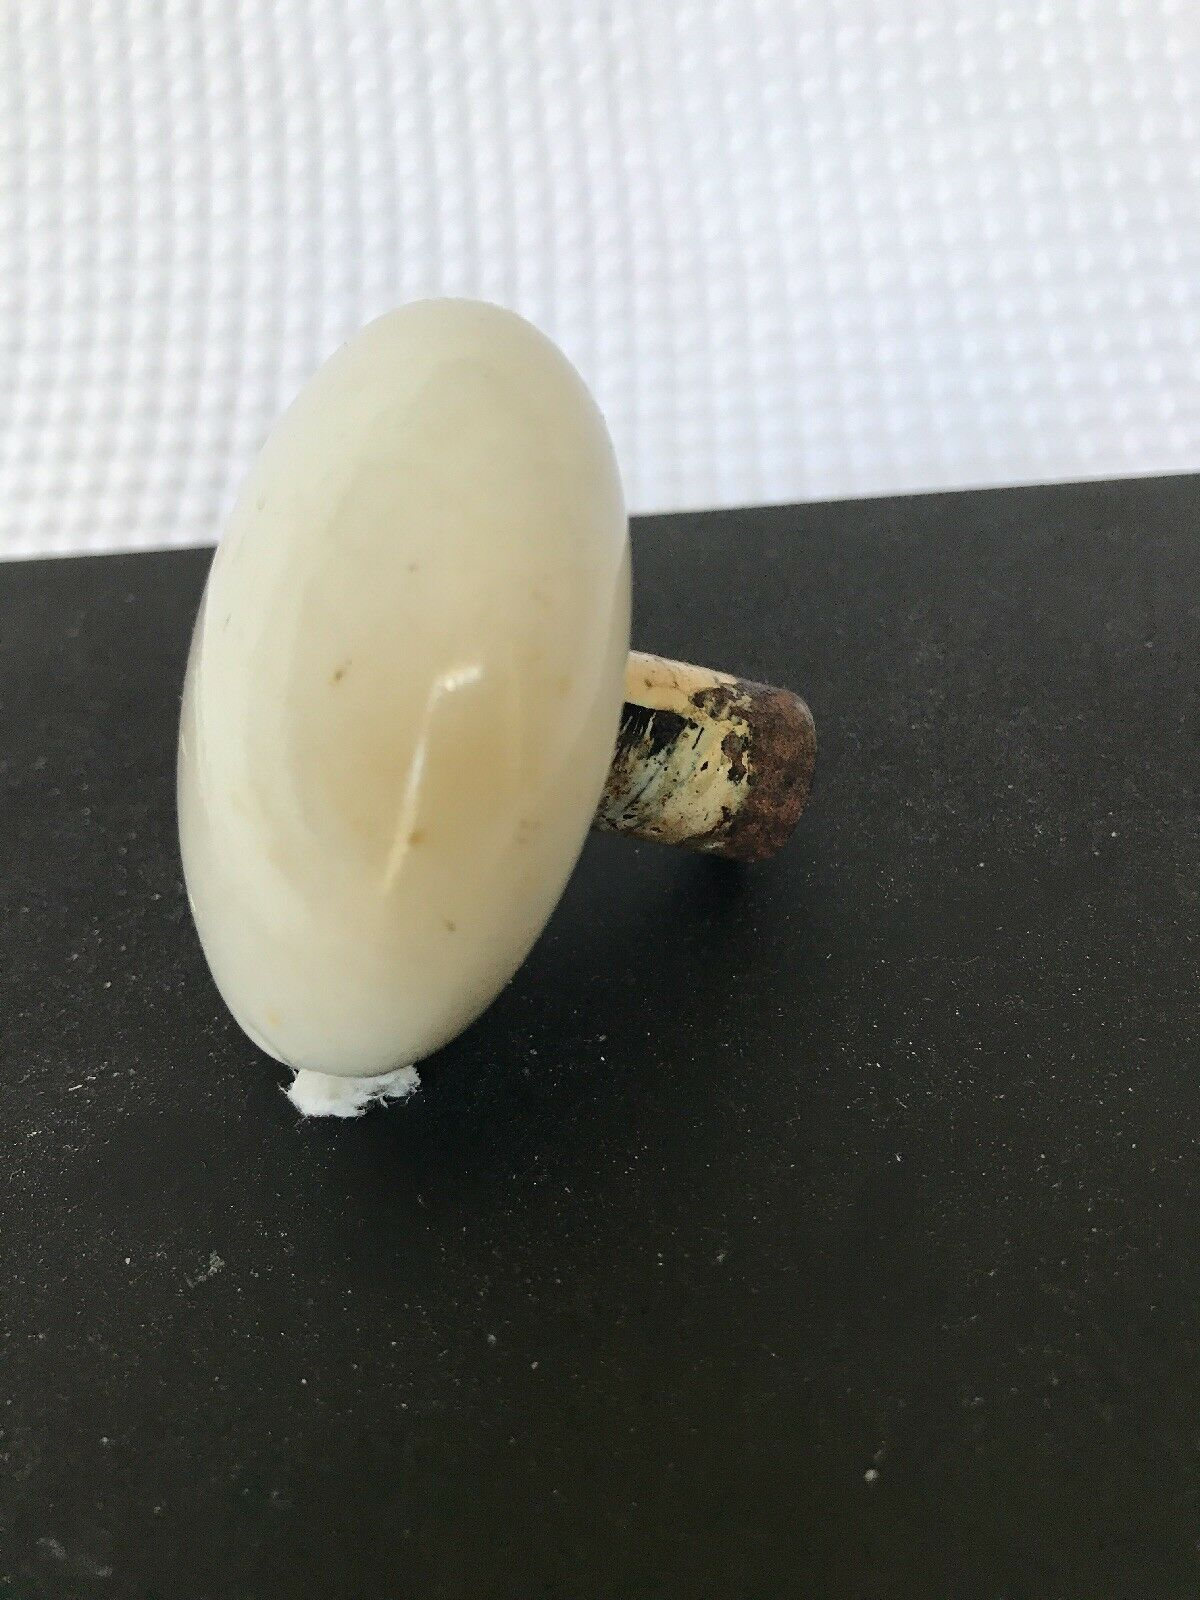 Vintage White Porcelain Door Knob 1 Of 3Only 1 Available ...